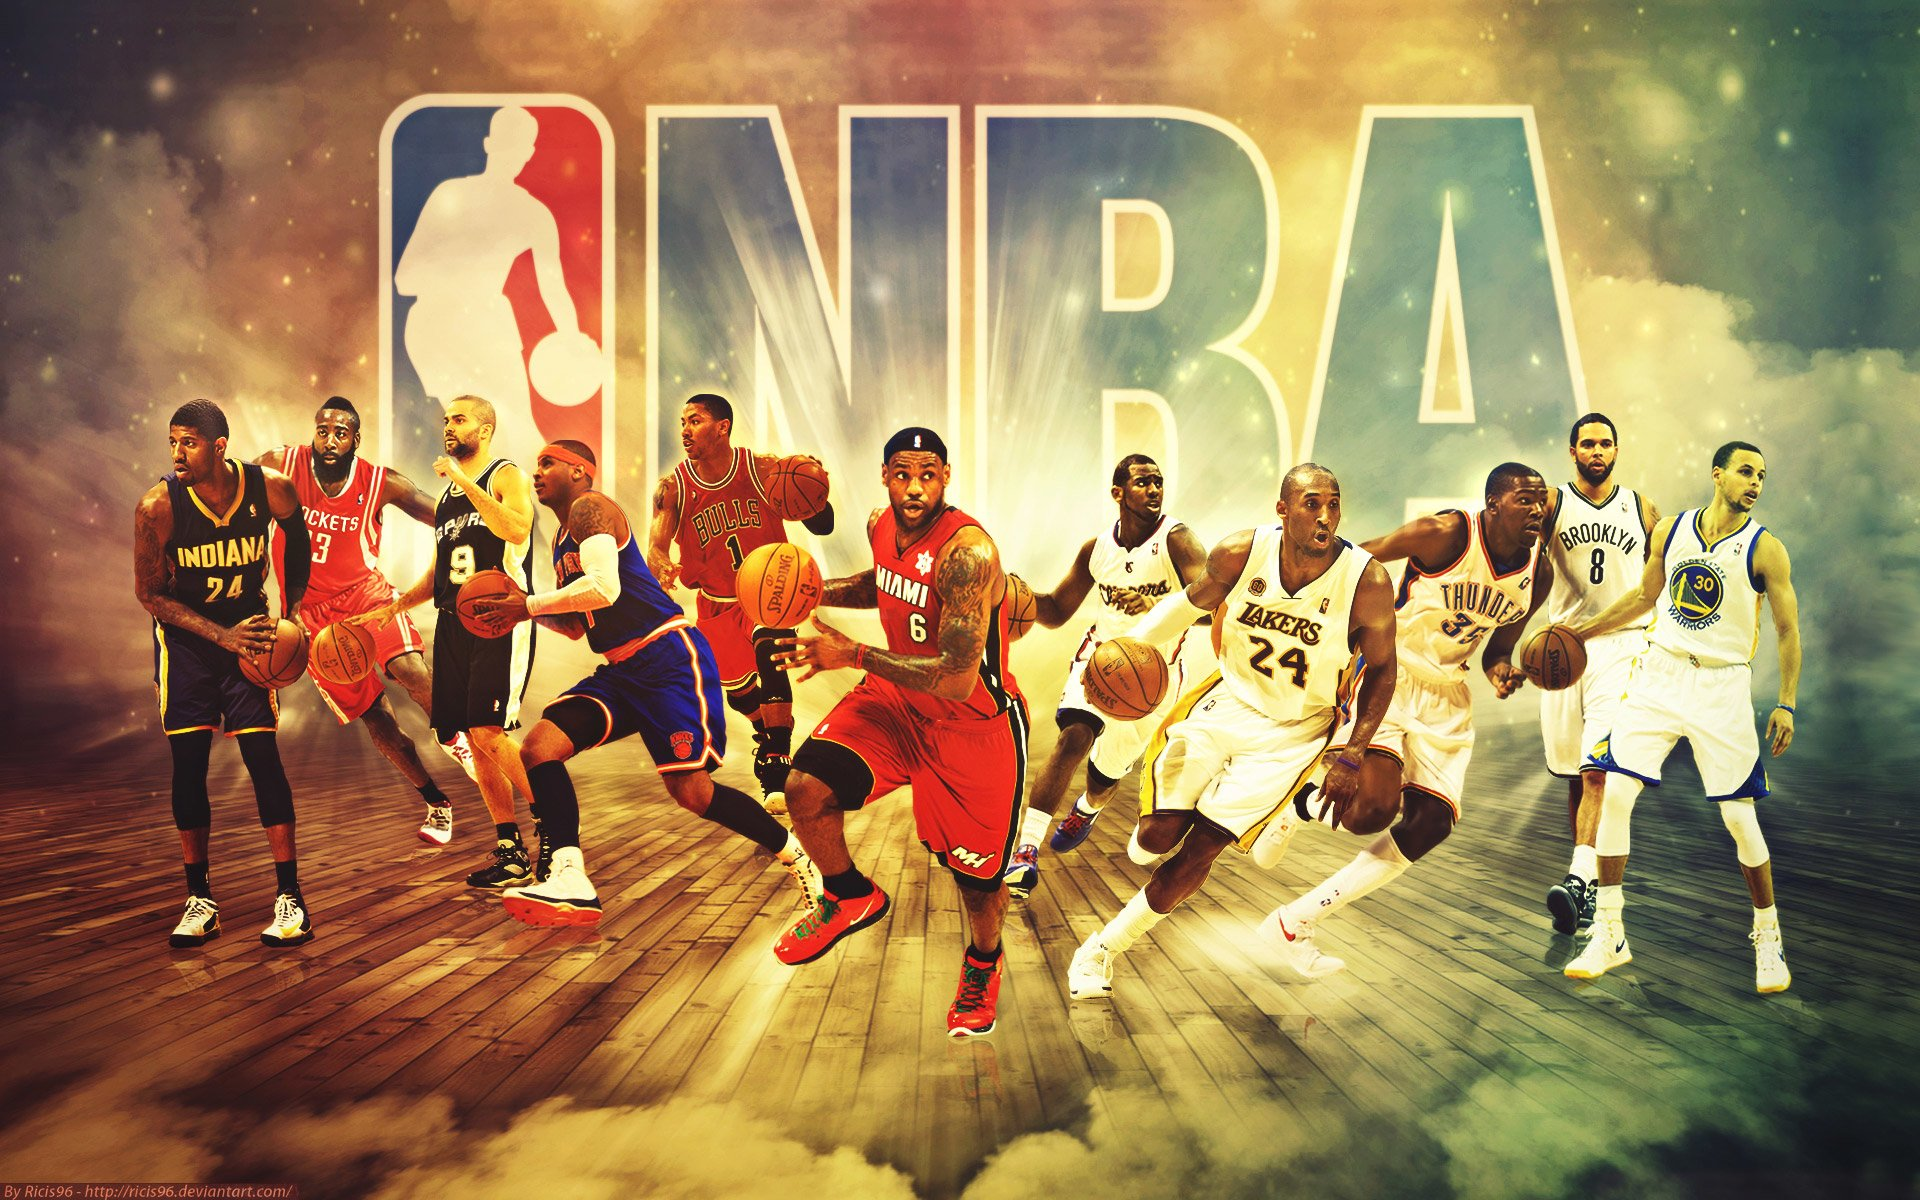 Hd wallpaper nba - Hd Wallpaper Background Id 467394